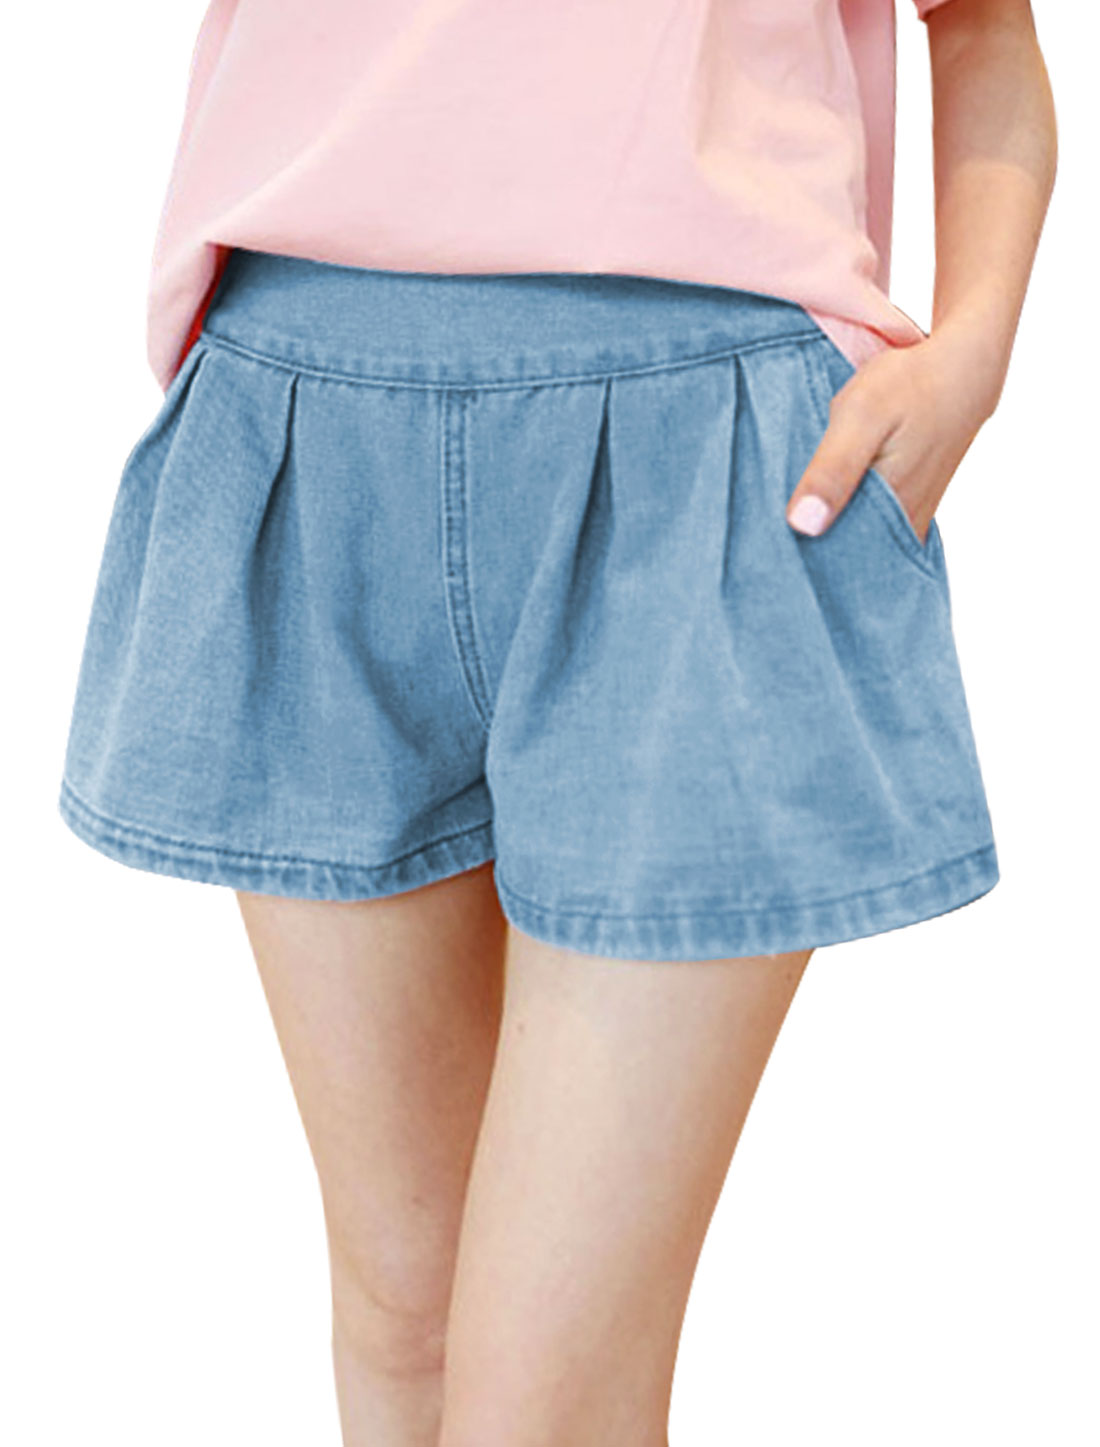 Women Stretchy Waist Mid Rise Casual Denim Shorts Light Blue XS